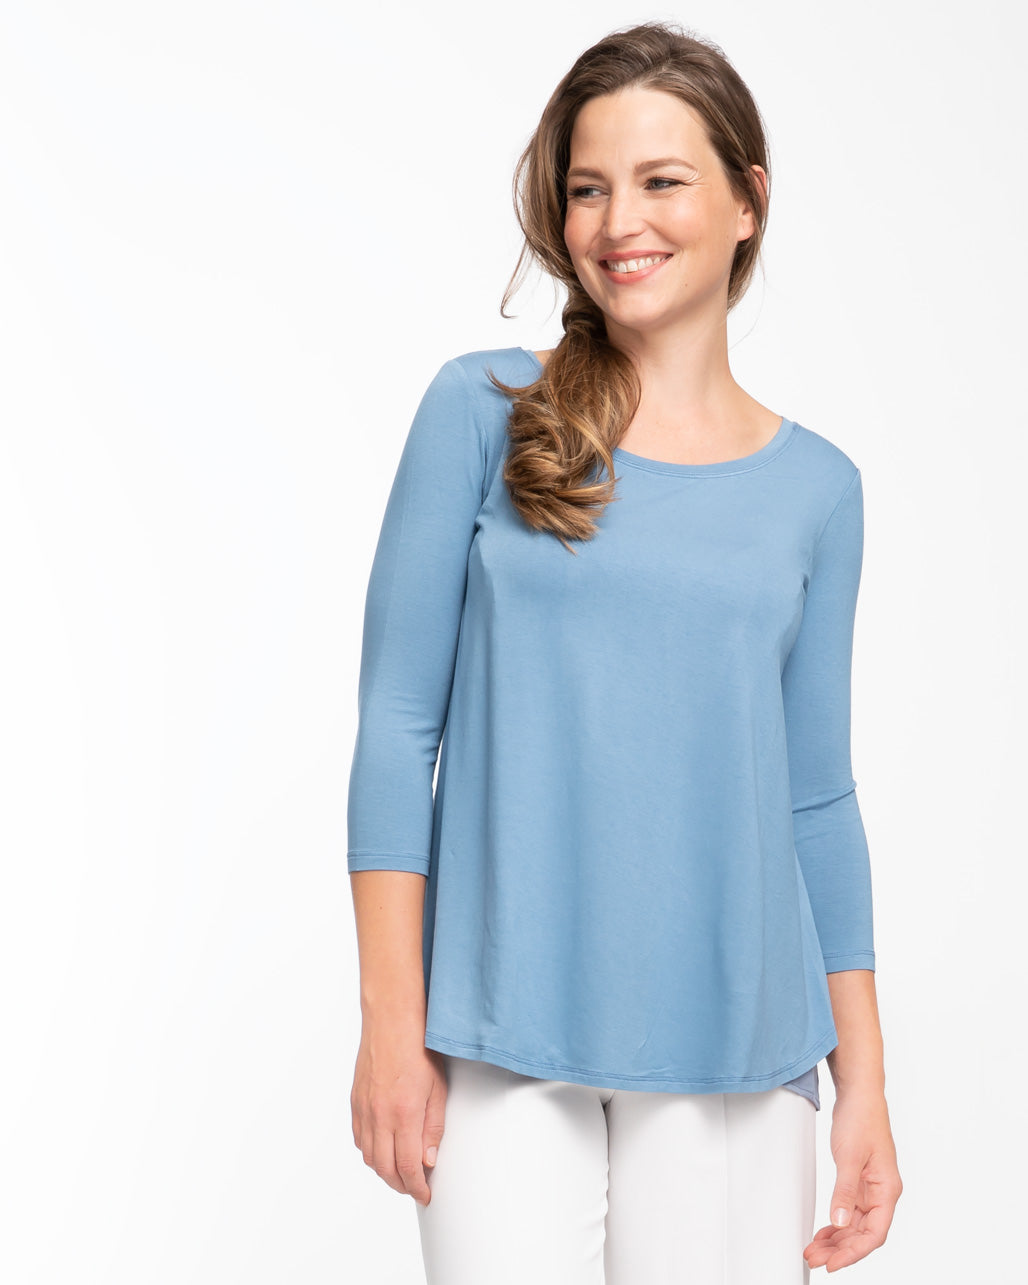 Blue tulip nursing top by Peachymama 1